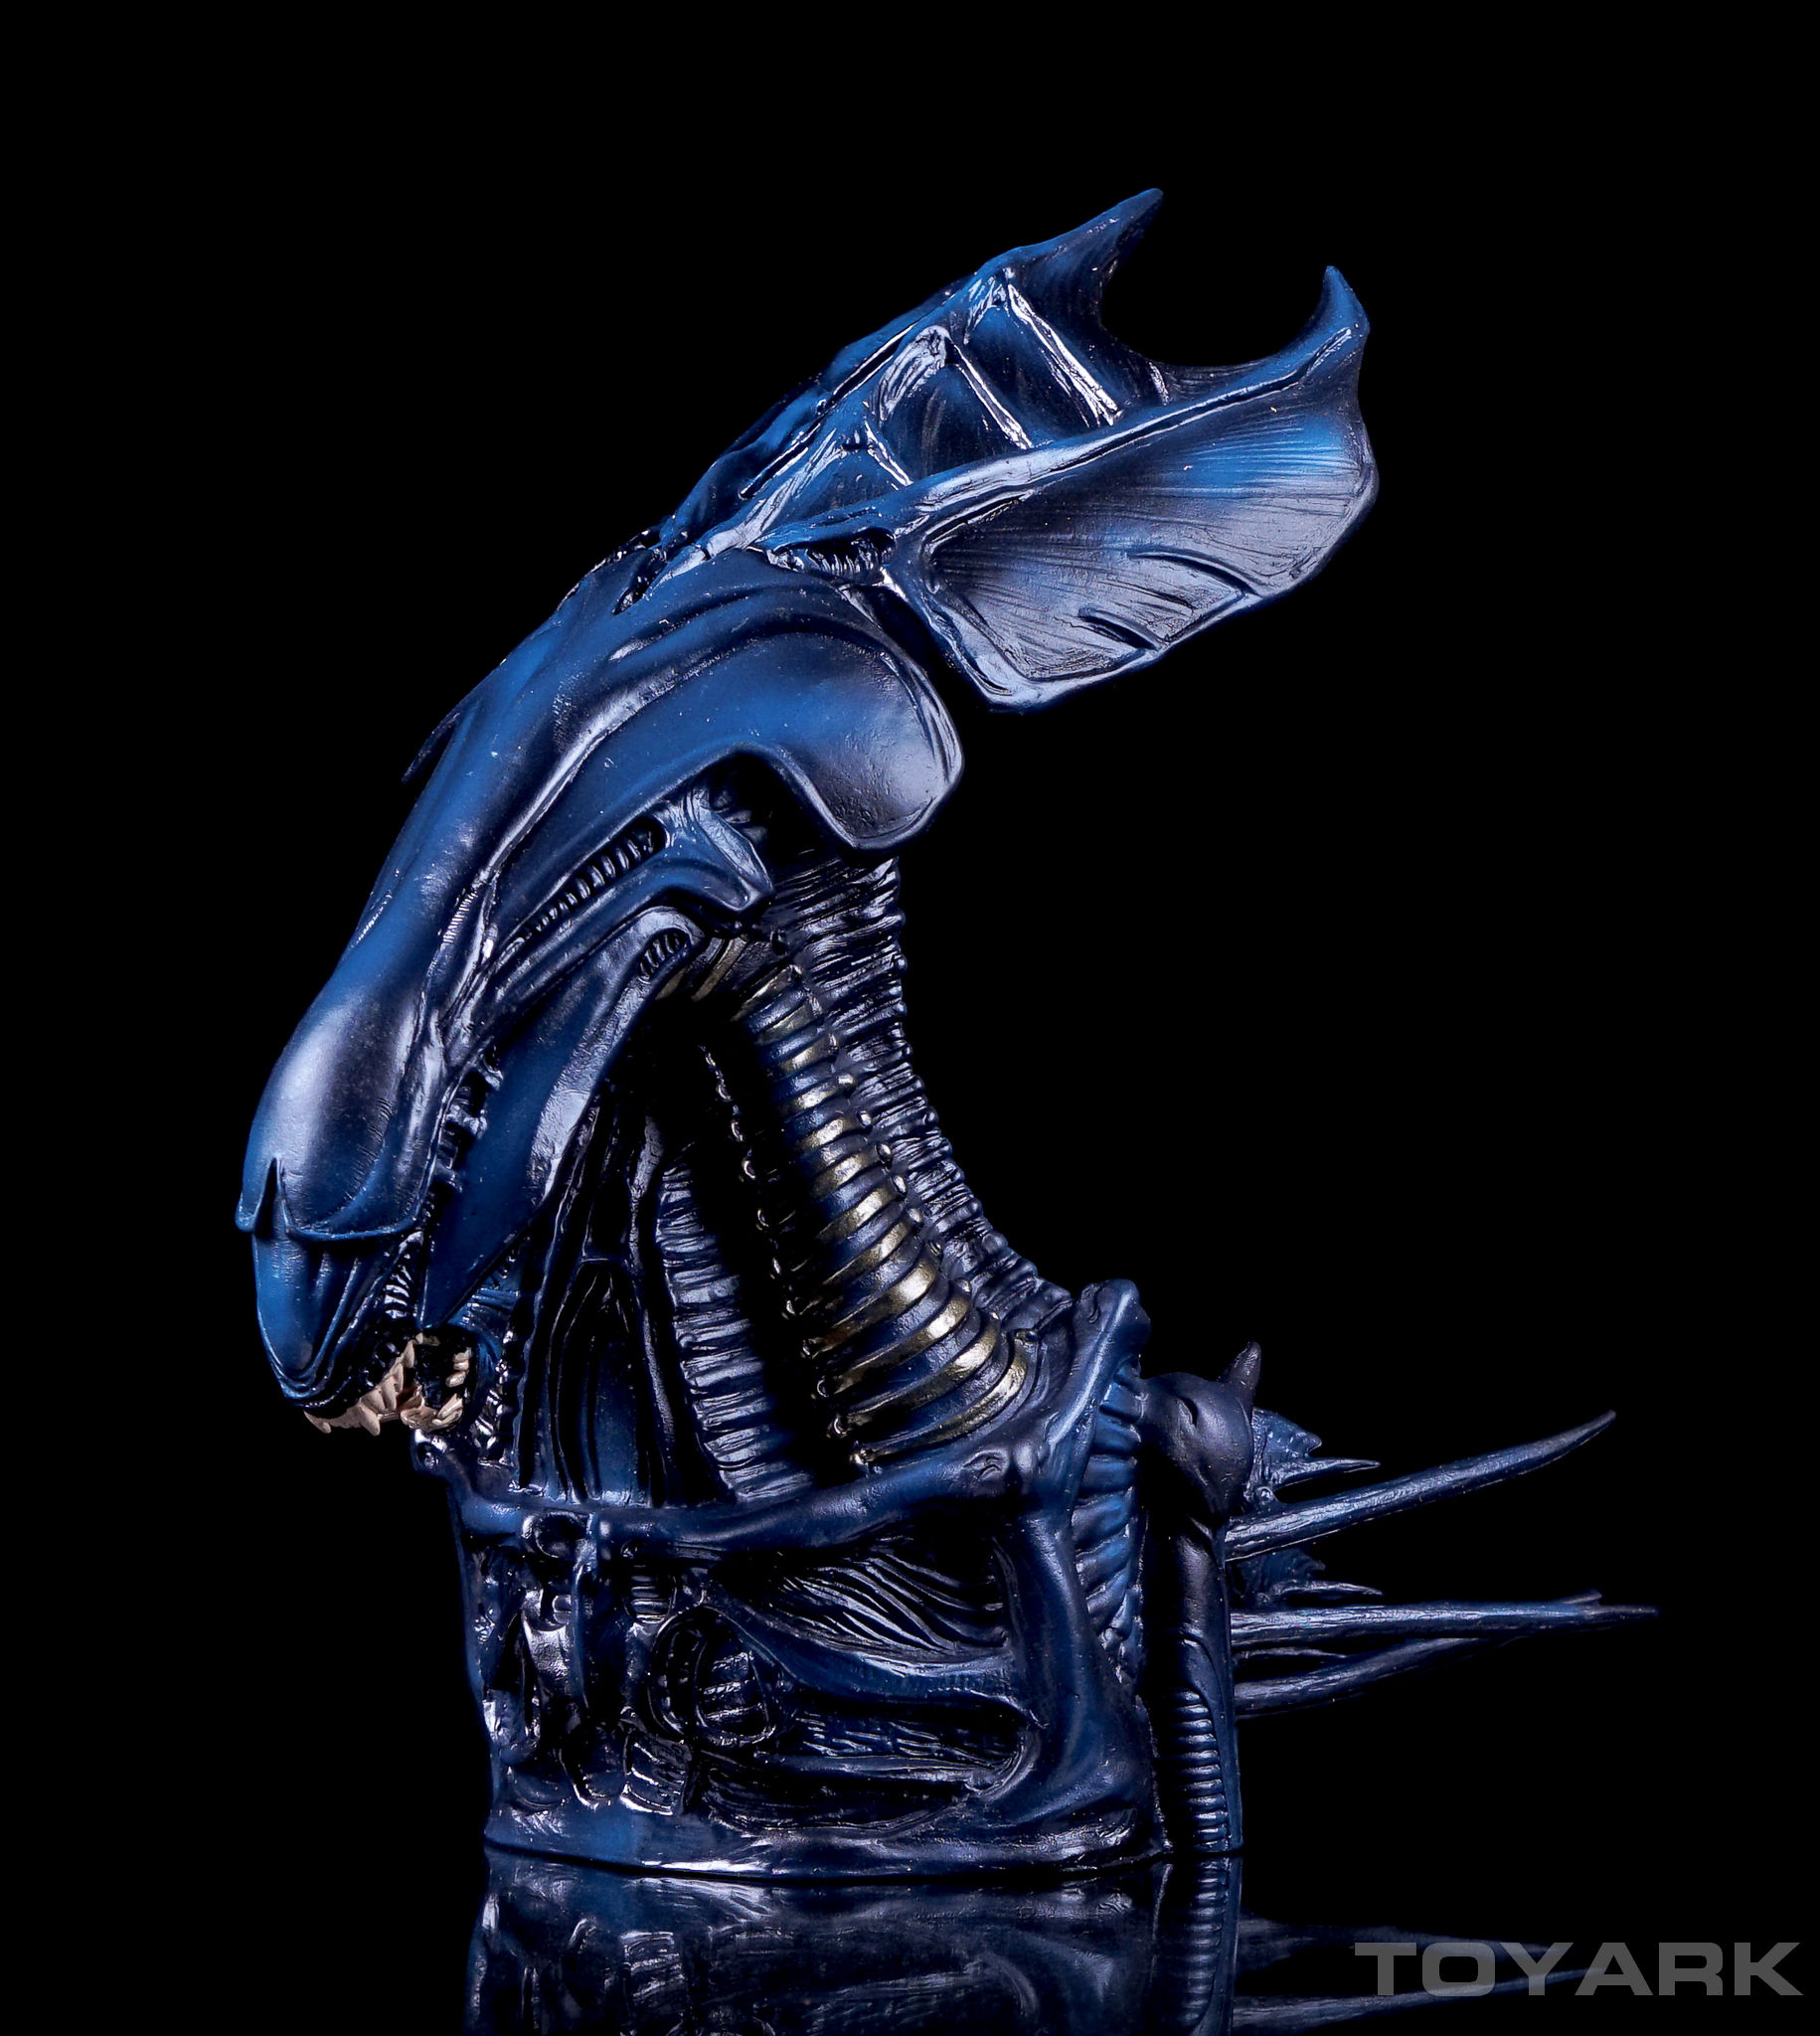 http://news.toyark.com/wp-content/uploads/sites/4/2016/04/Alien-Queen-Bust-Bank-002.jpg